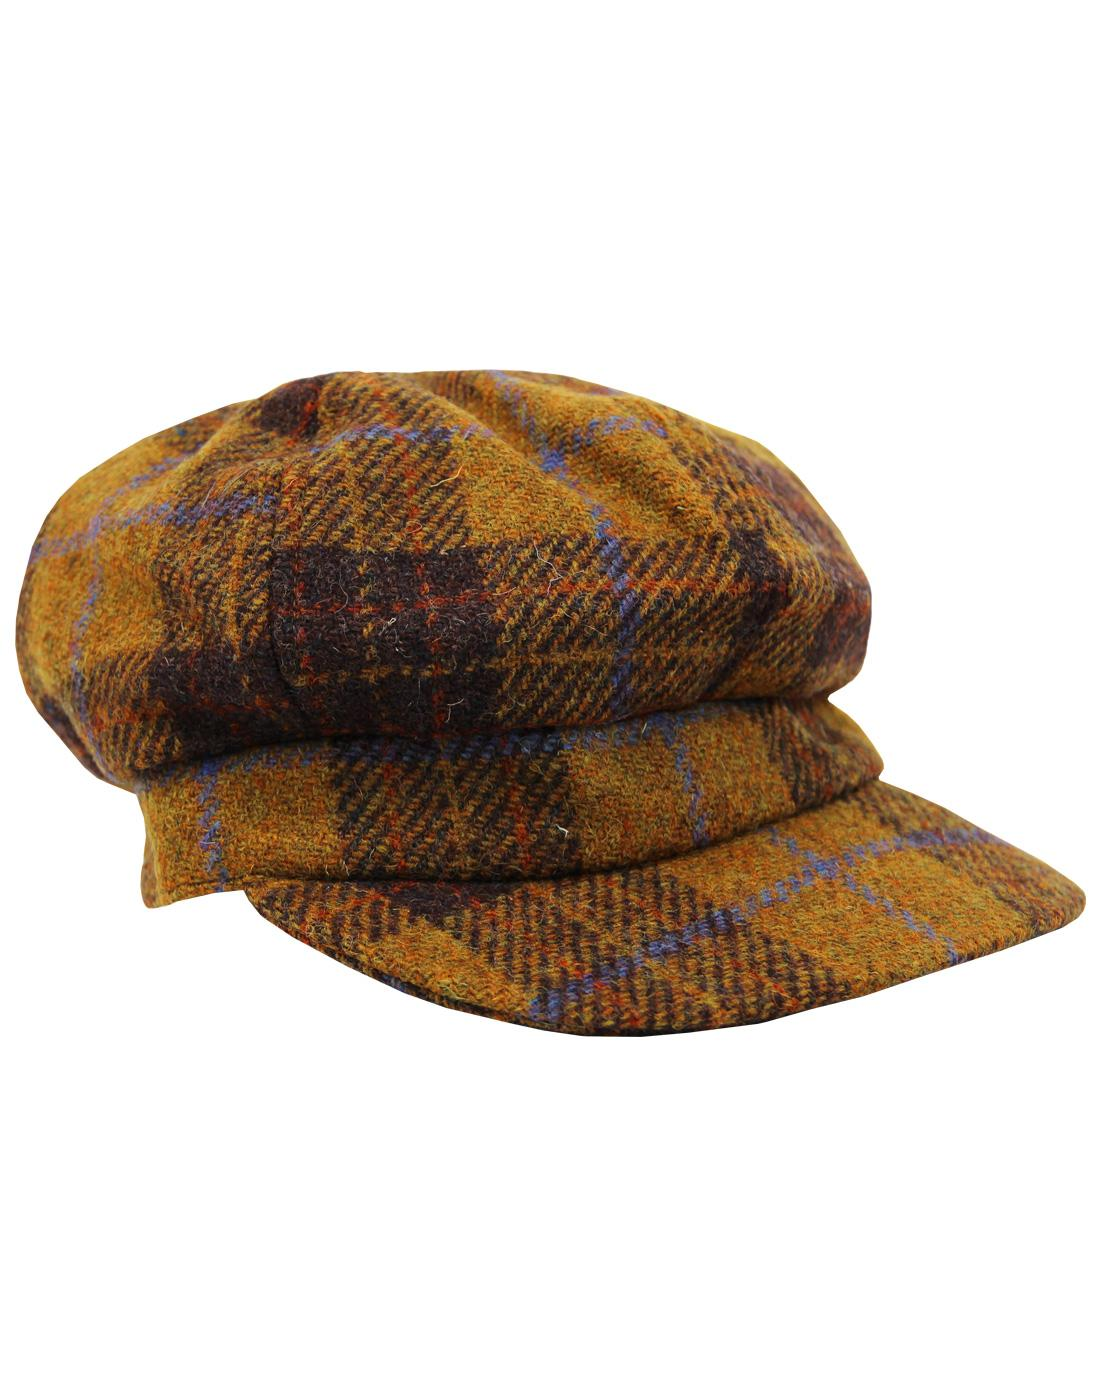 FAILSWORTH Retro Harris Tweed Womens Bakerboy Cap